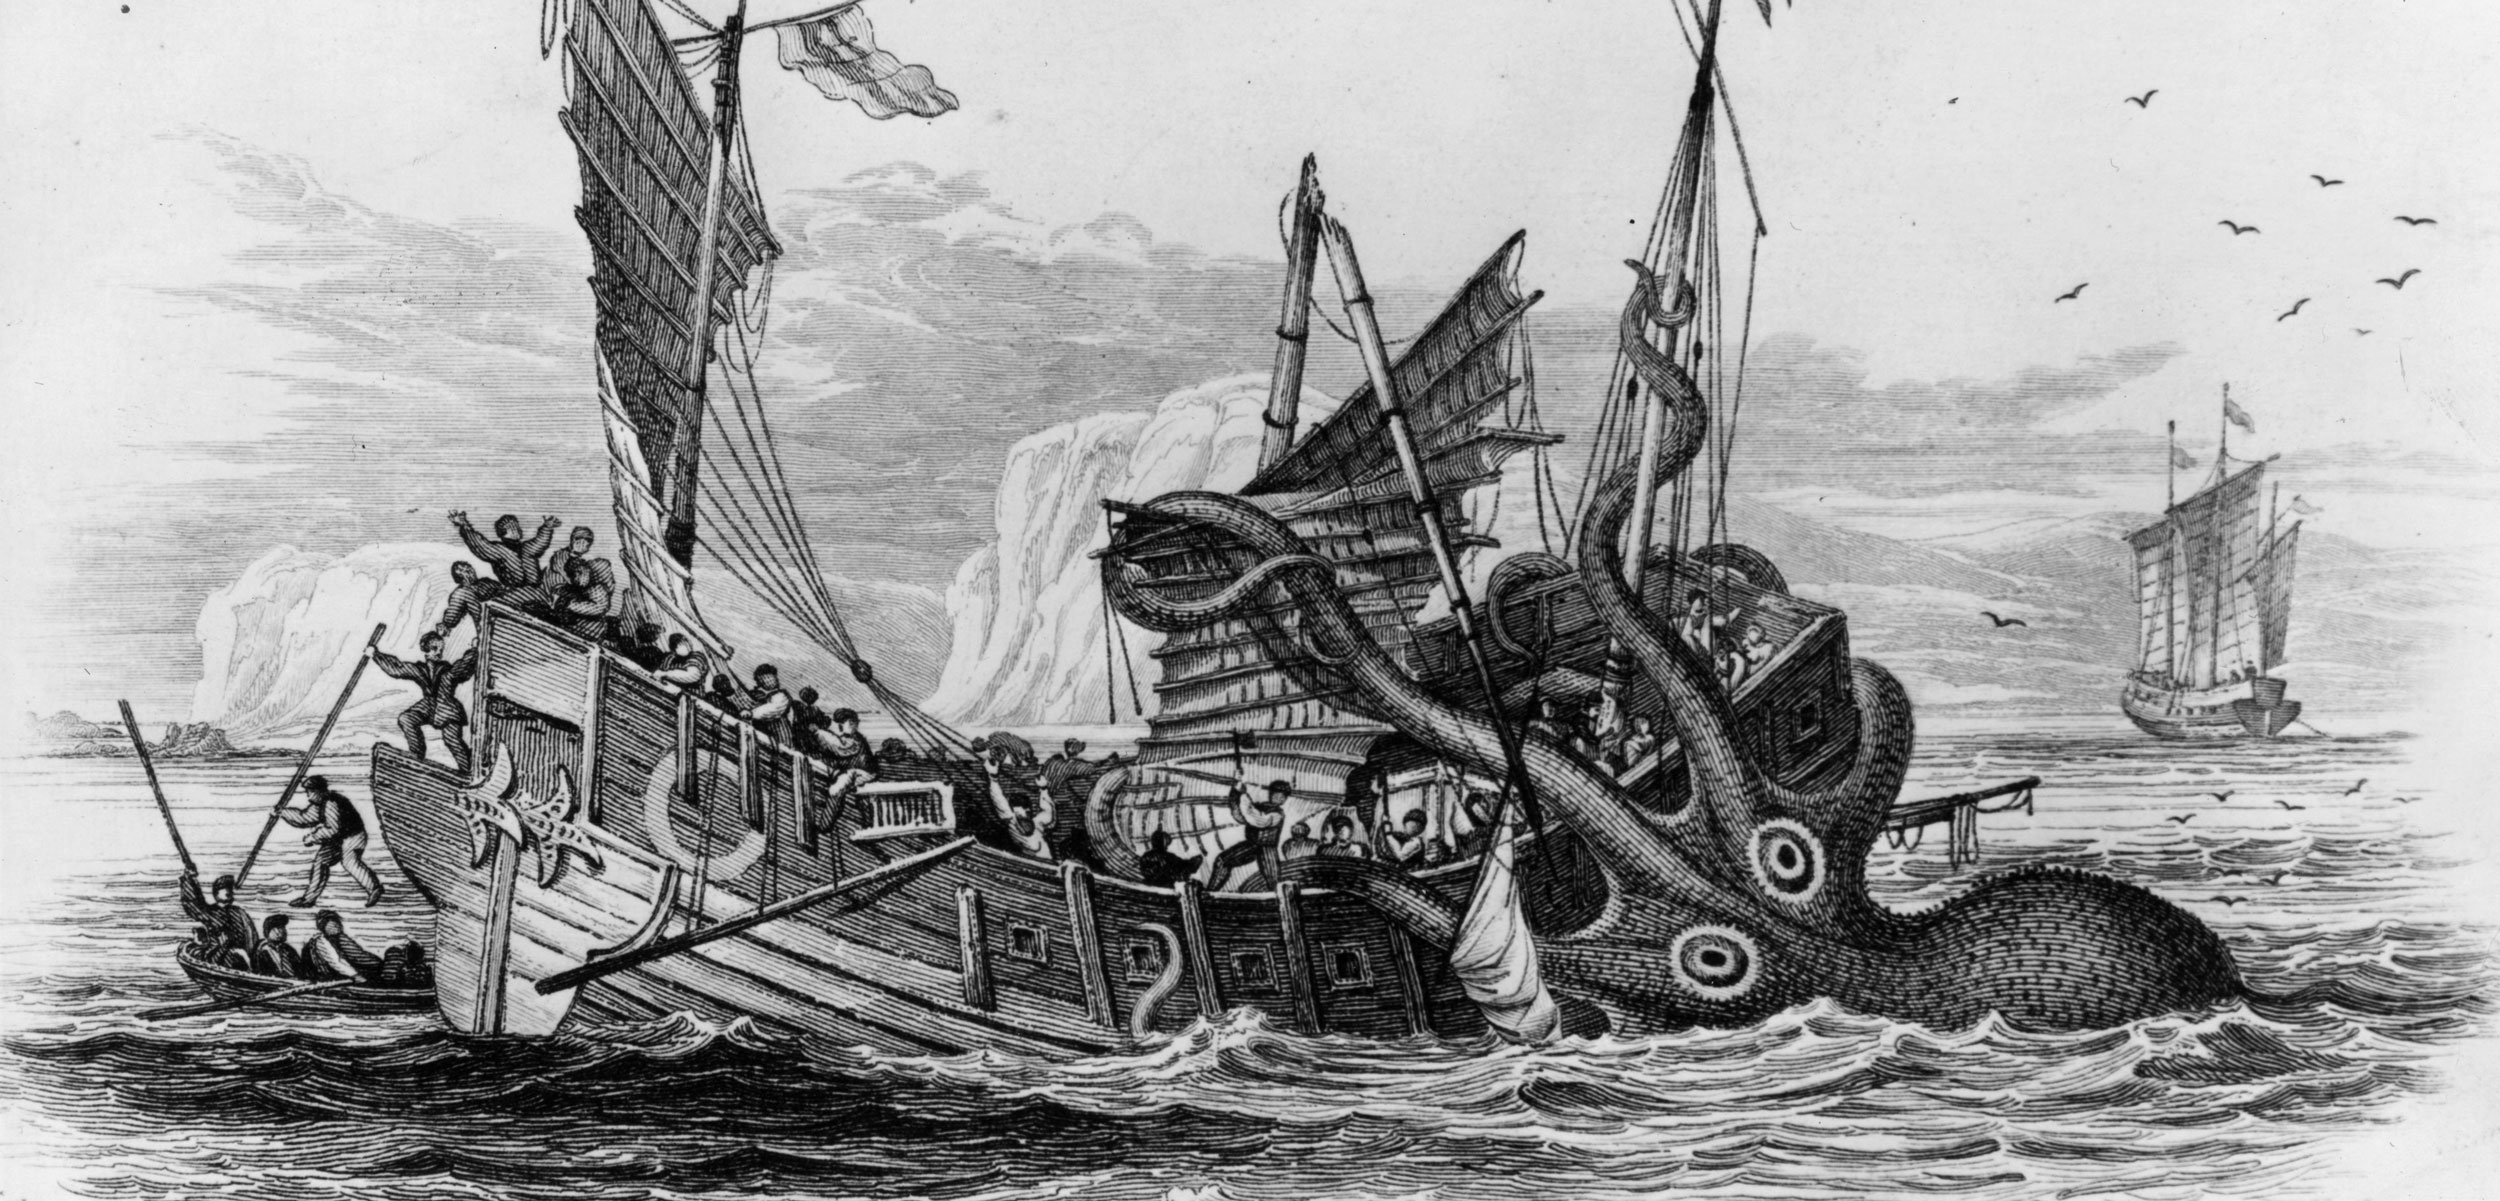 illustration of ship being attacked by a kraken